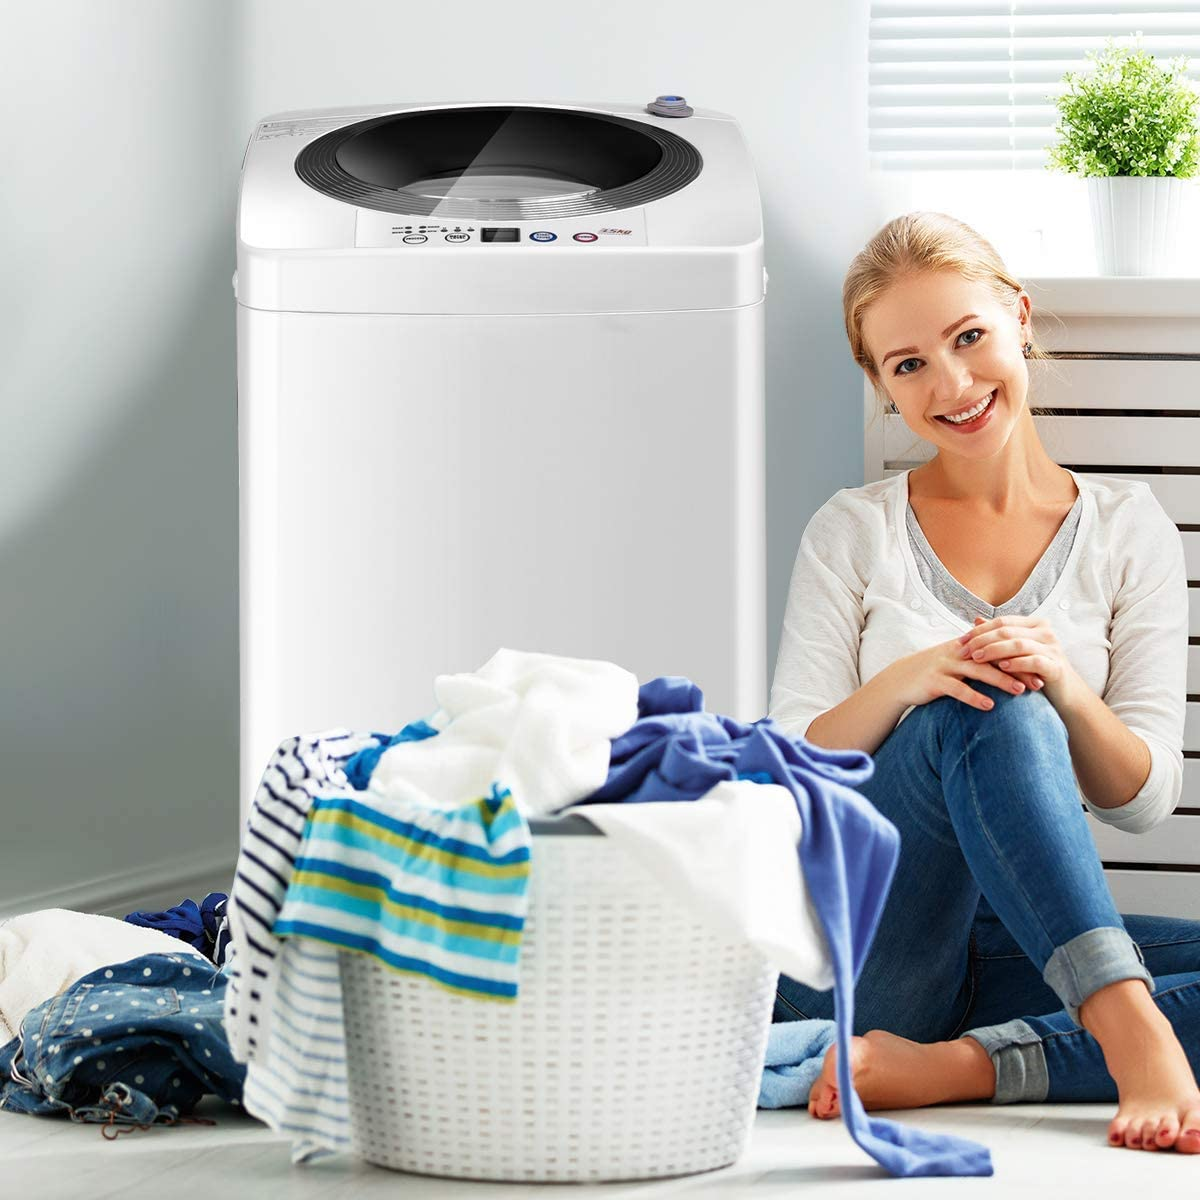 B07HKXVQYC Giantex Portable Compact Full-Automatic Laundry 8 lbs Load Capacity Washing Machine Washer/Spinner W/Drain Pump 61UPXRU26uL.SL1176_